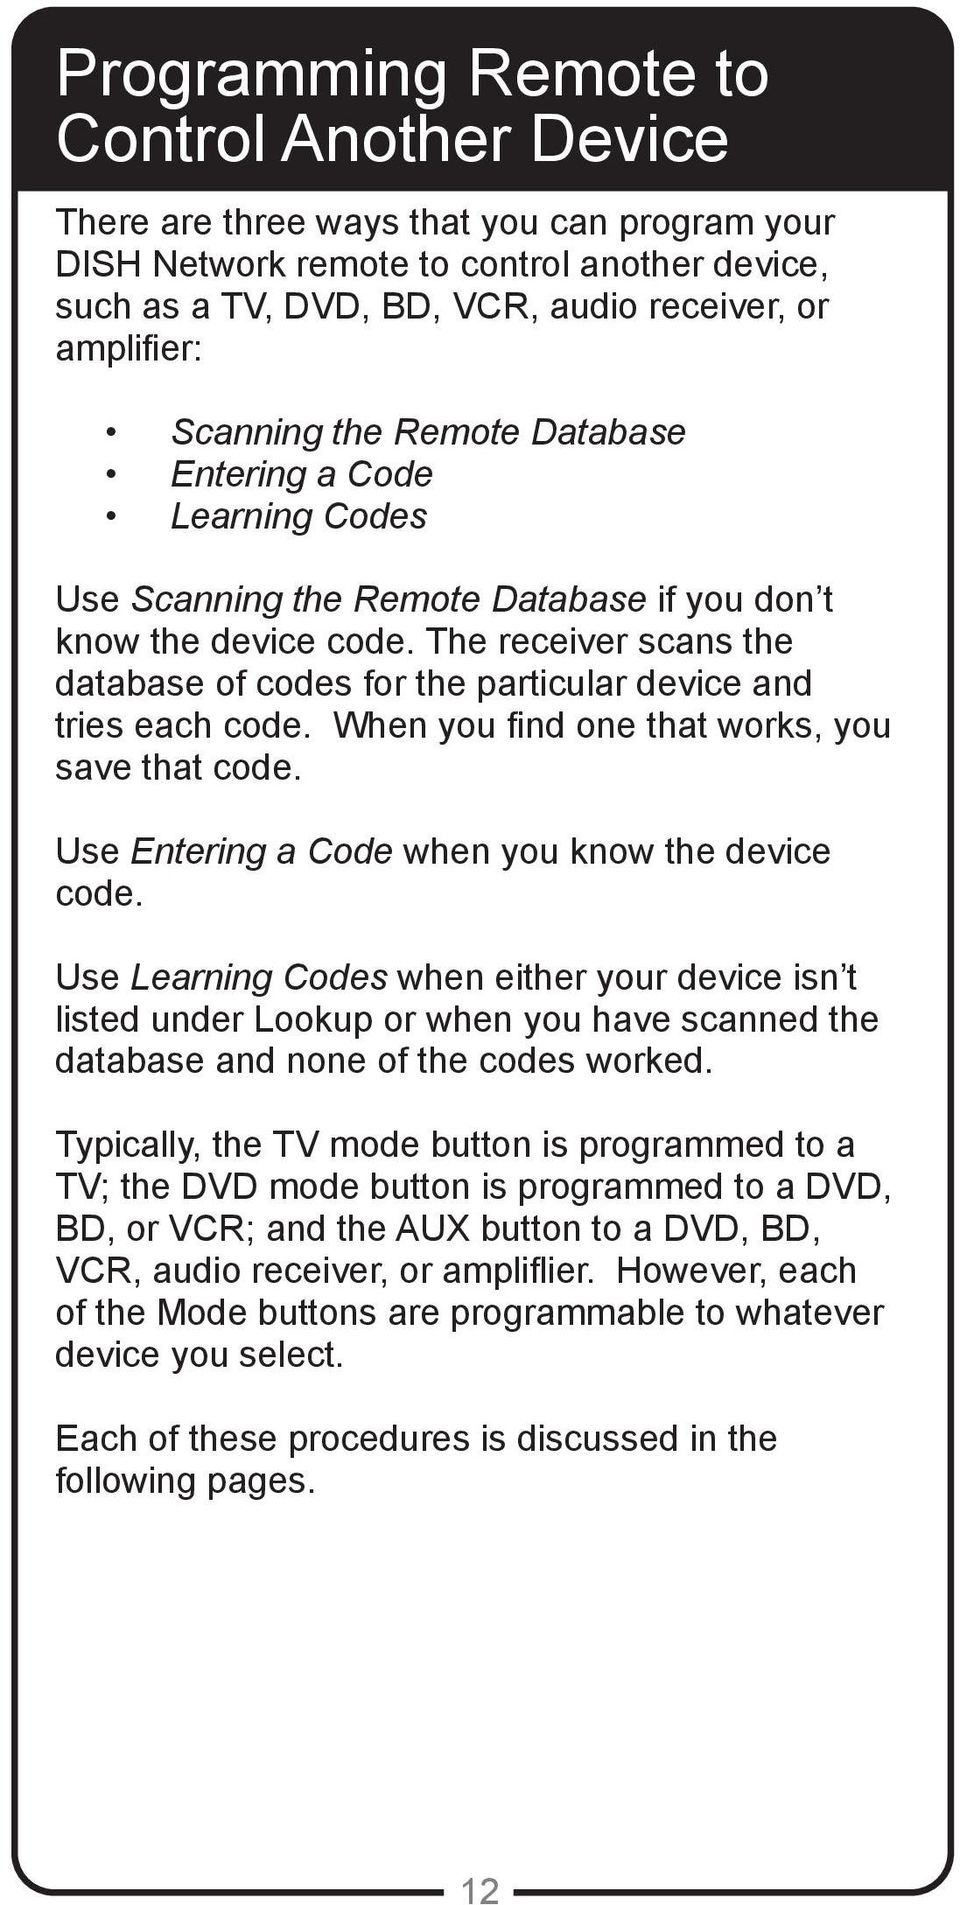 The receiver scans the database of codes for the particular device and tries each code. When you find one that works, you save that code. Use Entering a Code when you know the device code.